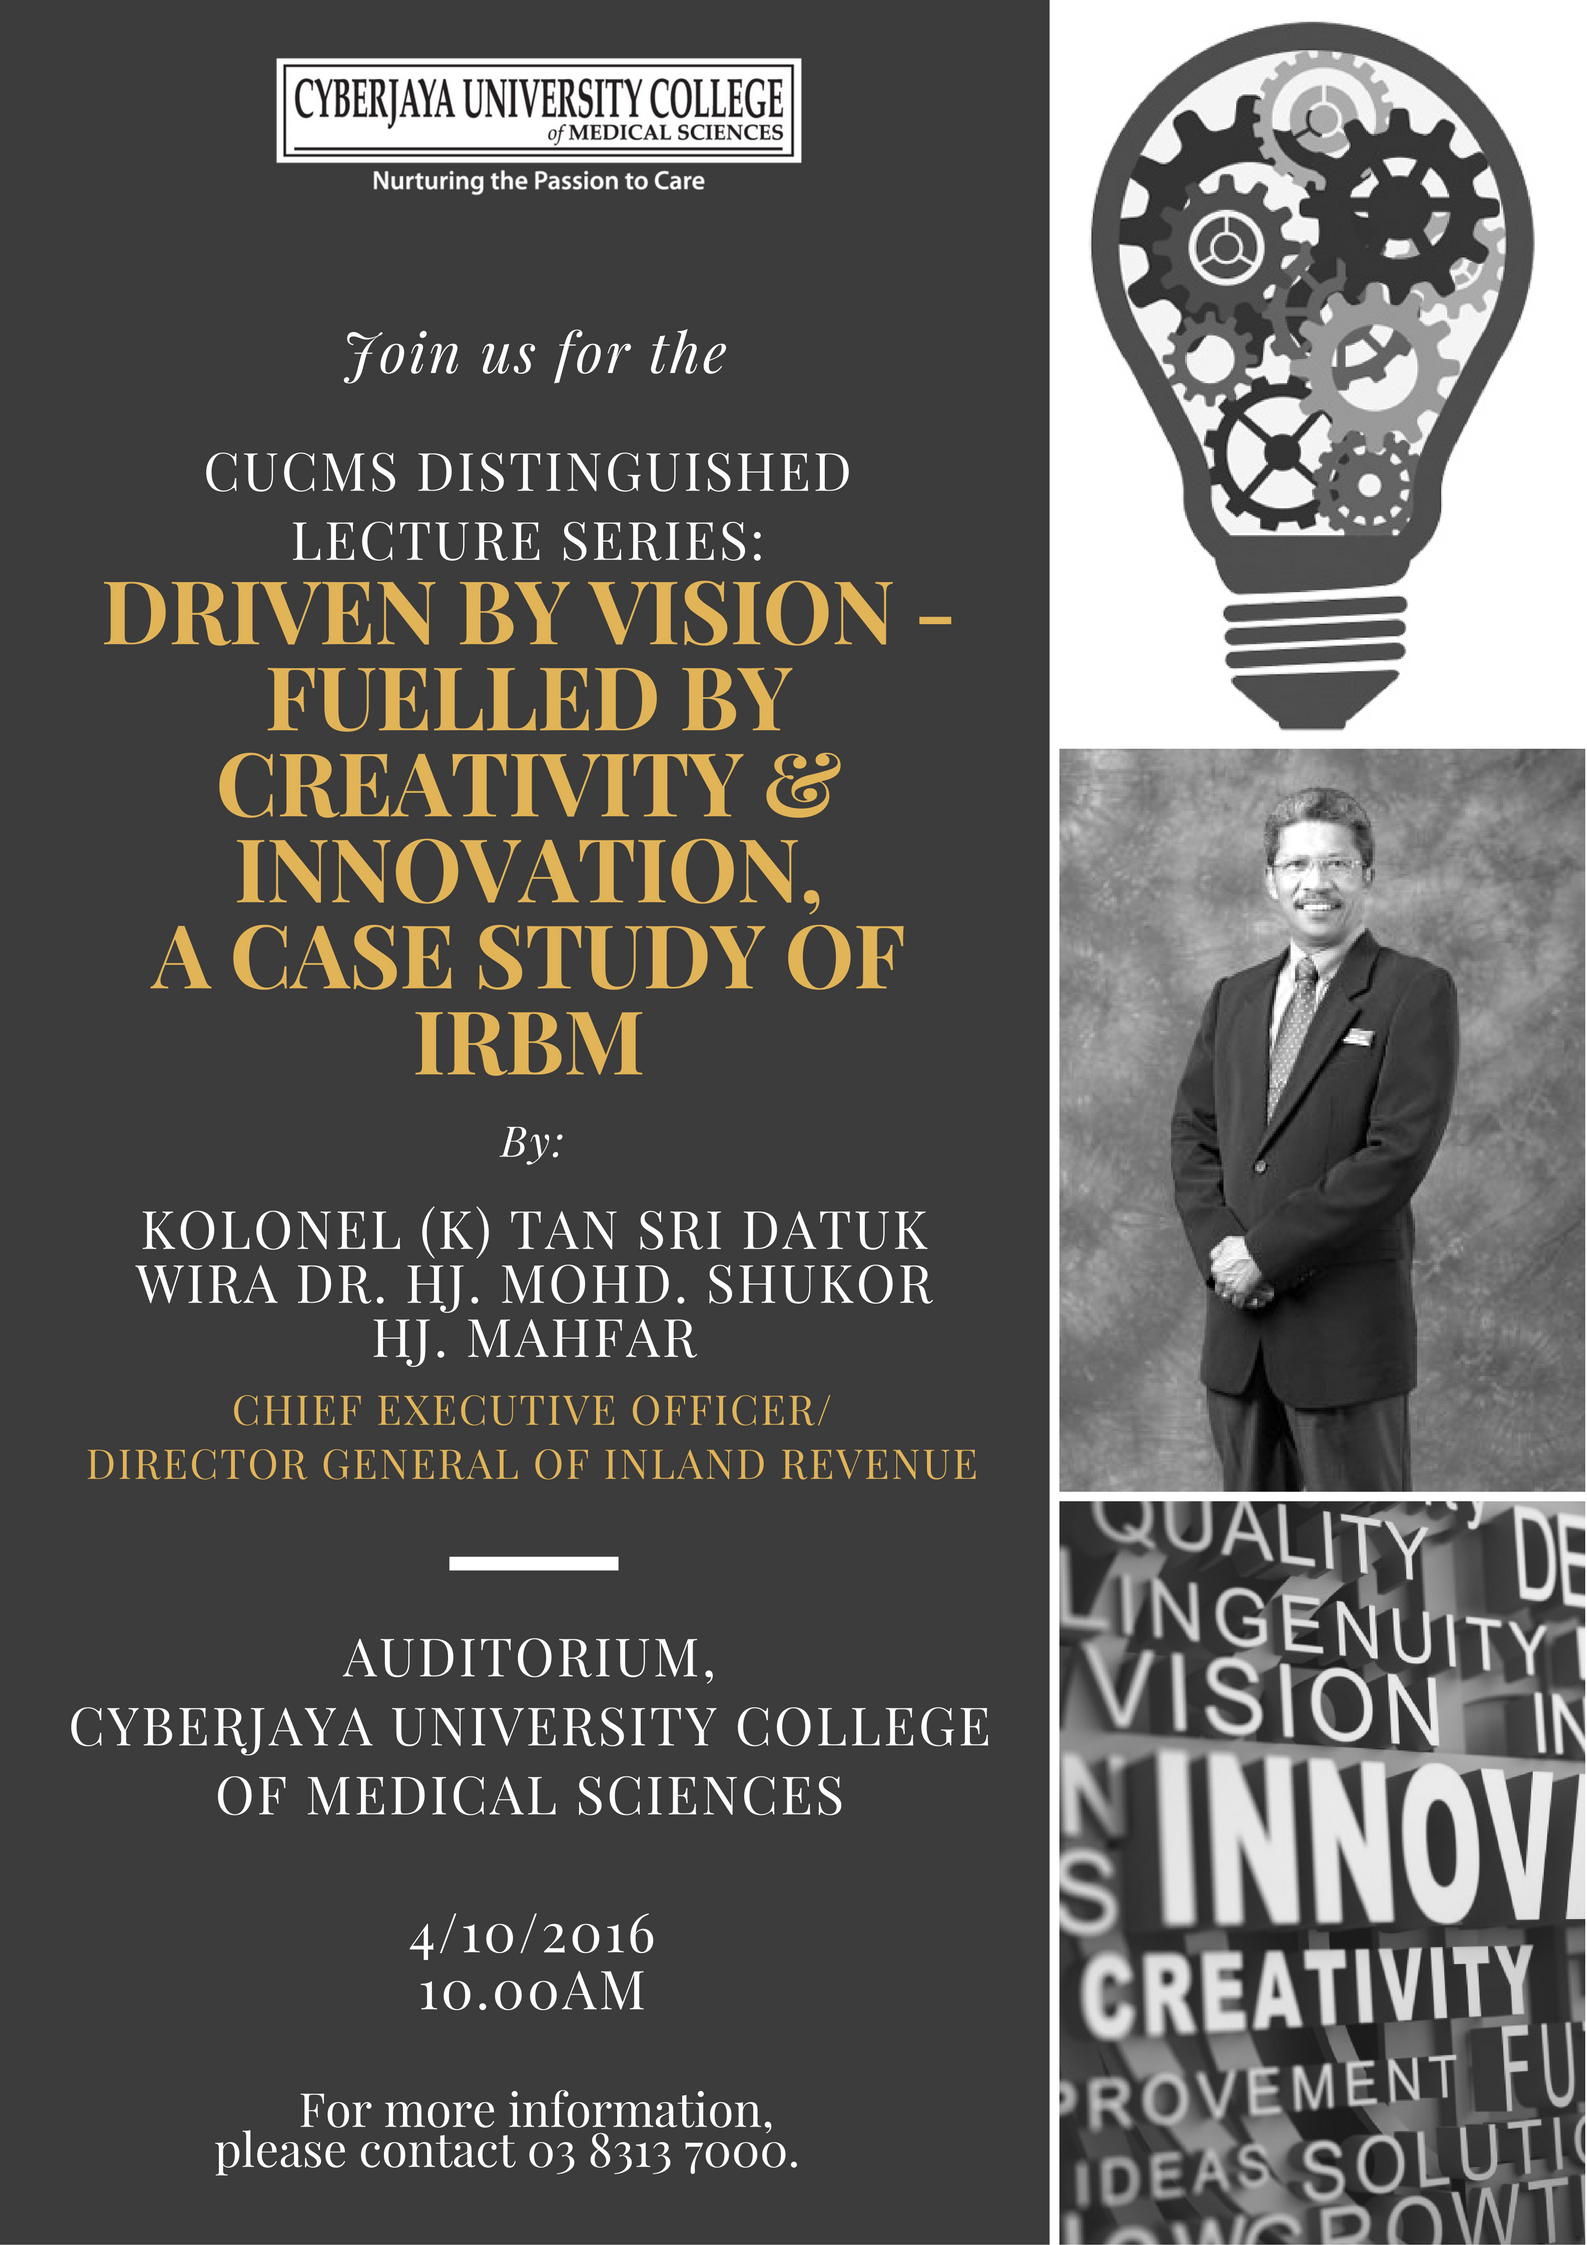 driven-by-vision-fuelled-by-creativity-innovation-a-case-study-of-irbm_my